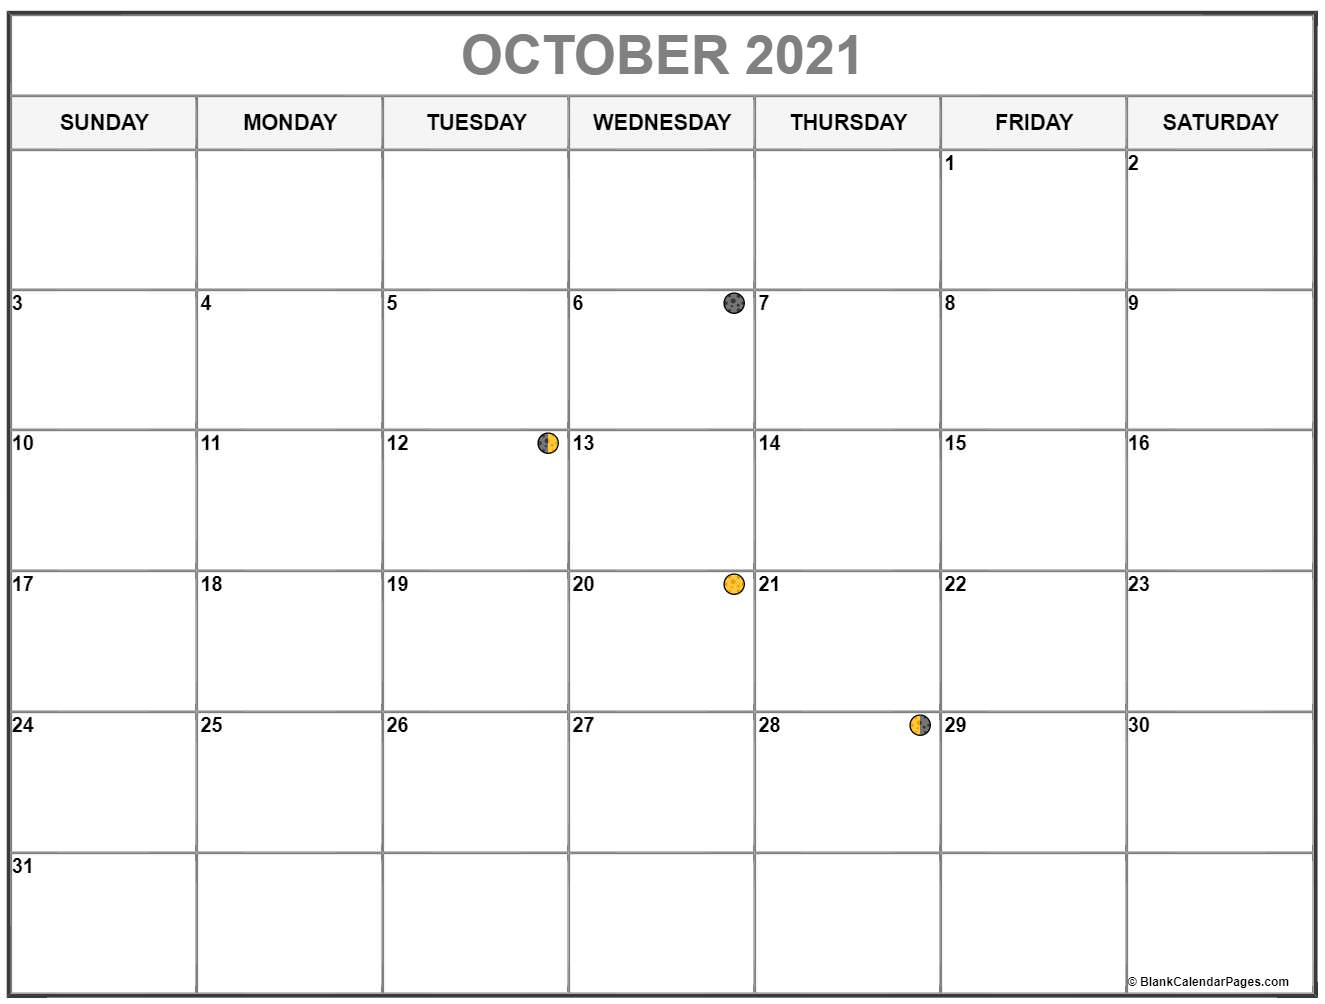 October 2019 Lunar calendar. moon phase calendar with USA holidays